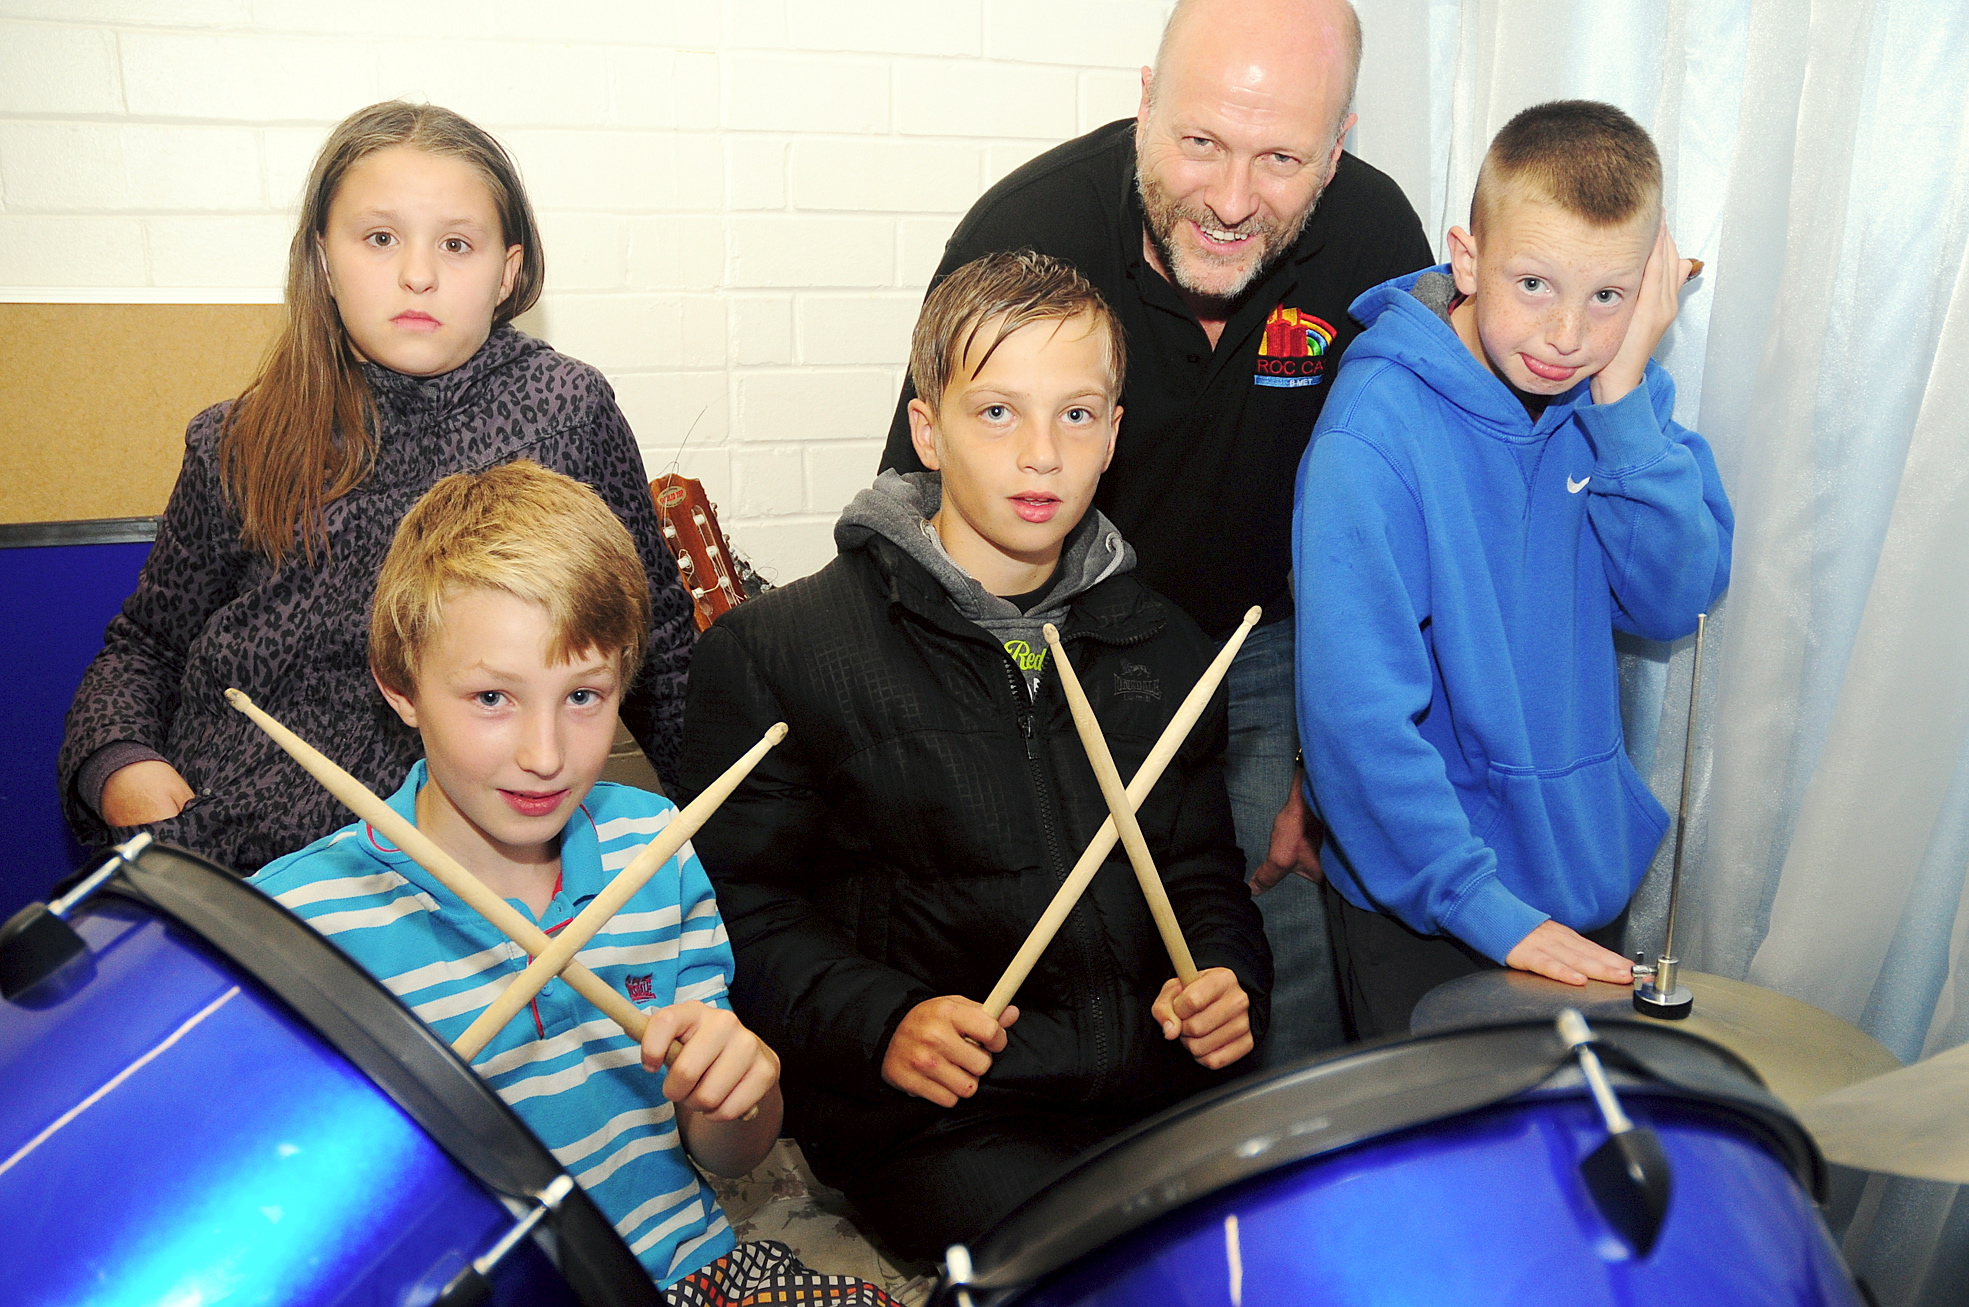 DRUM BEAT Volunteer Simon Wilson teaches drums to, from left, Angel McCann and Dylan Gregory, both aged 11 and Edmund Walsh and Findlay Bailey, both aged 12